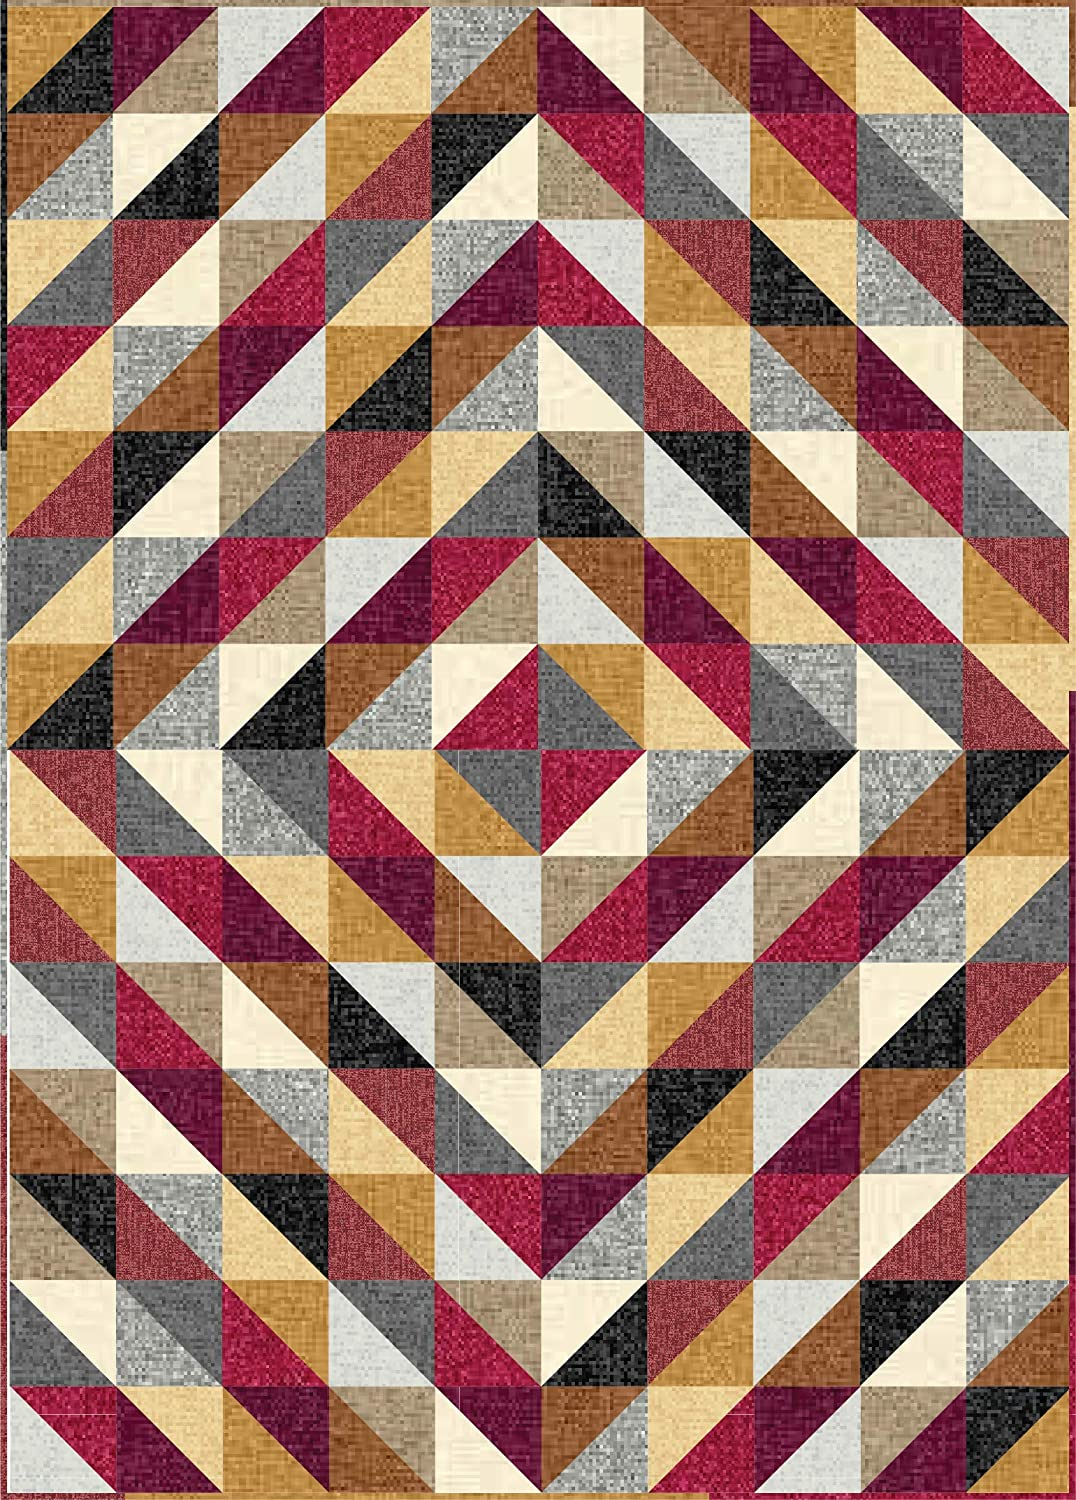 Connecting Threads Beginner Quilt Kit - Half-Square Triangle Fun (Faux Linen Tonals - Warm)